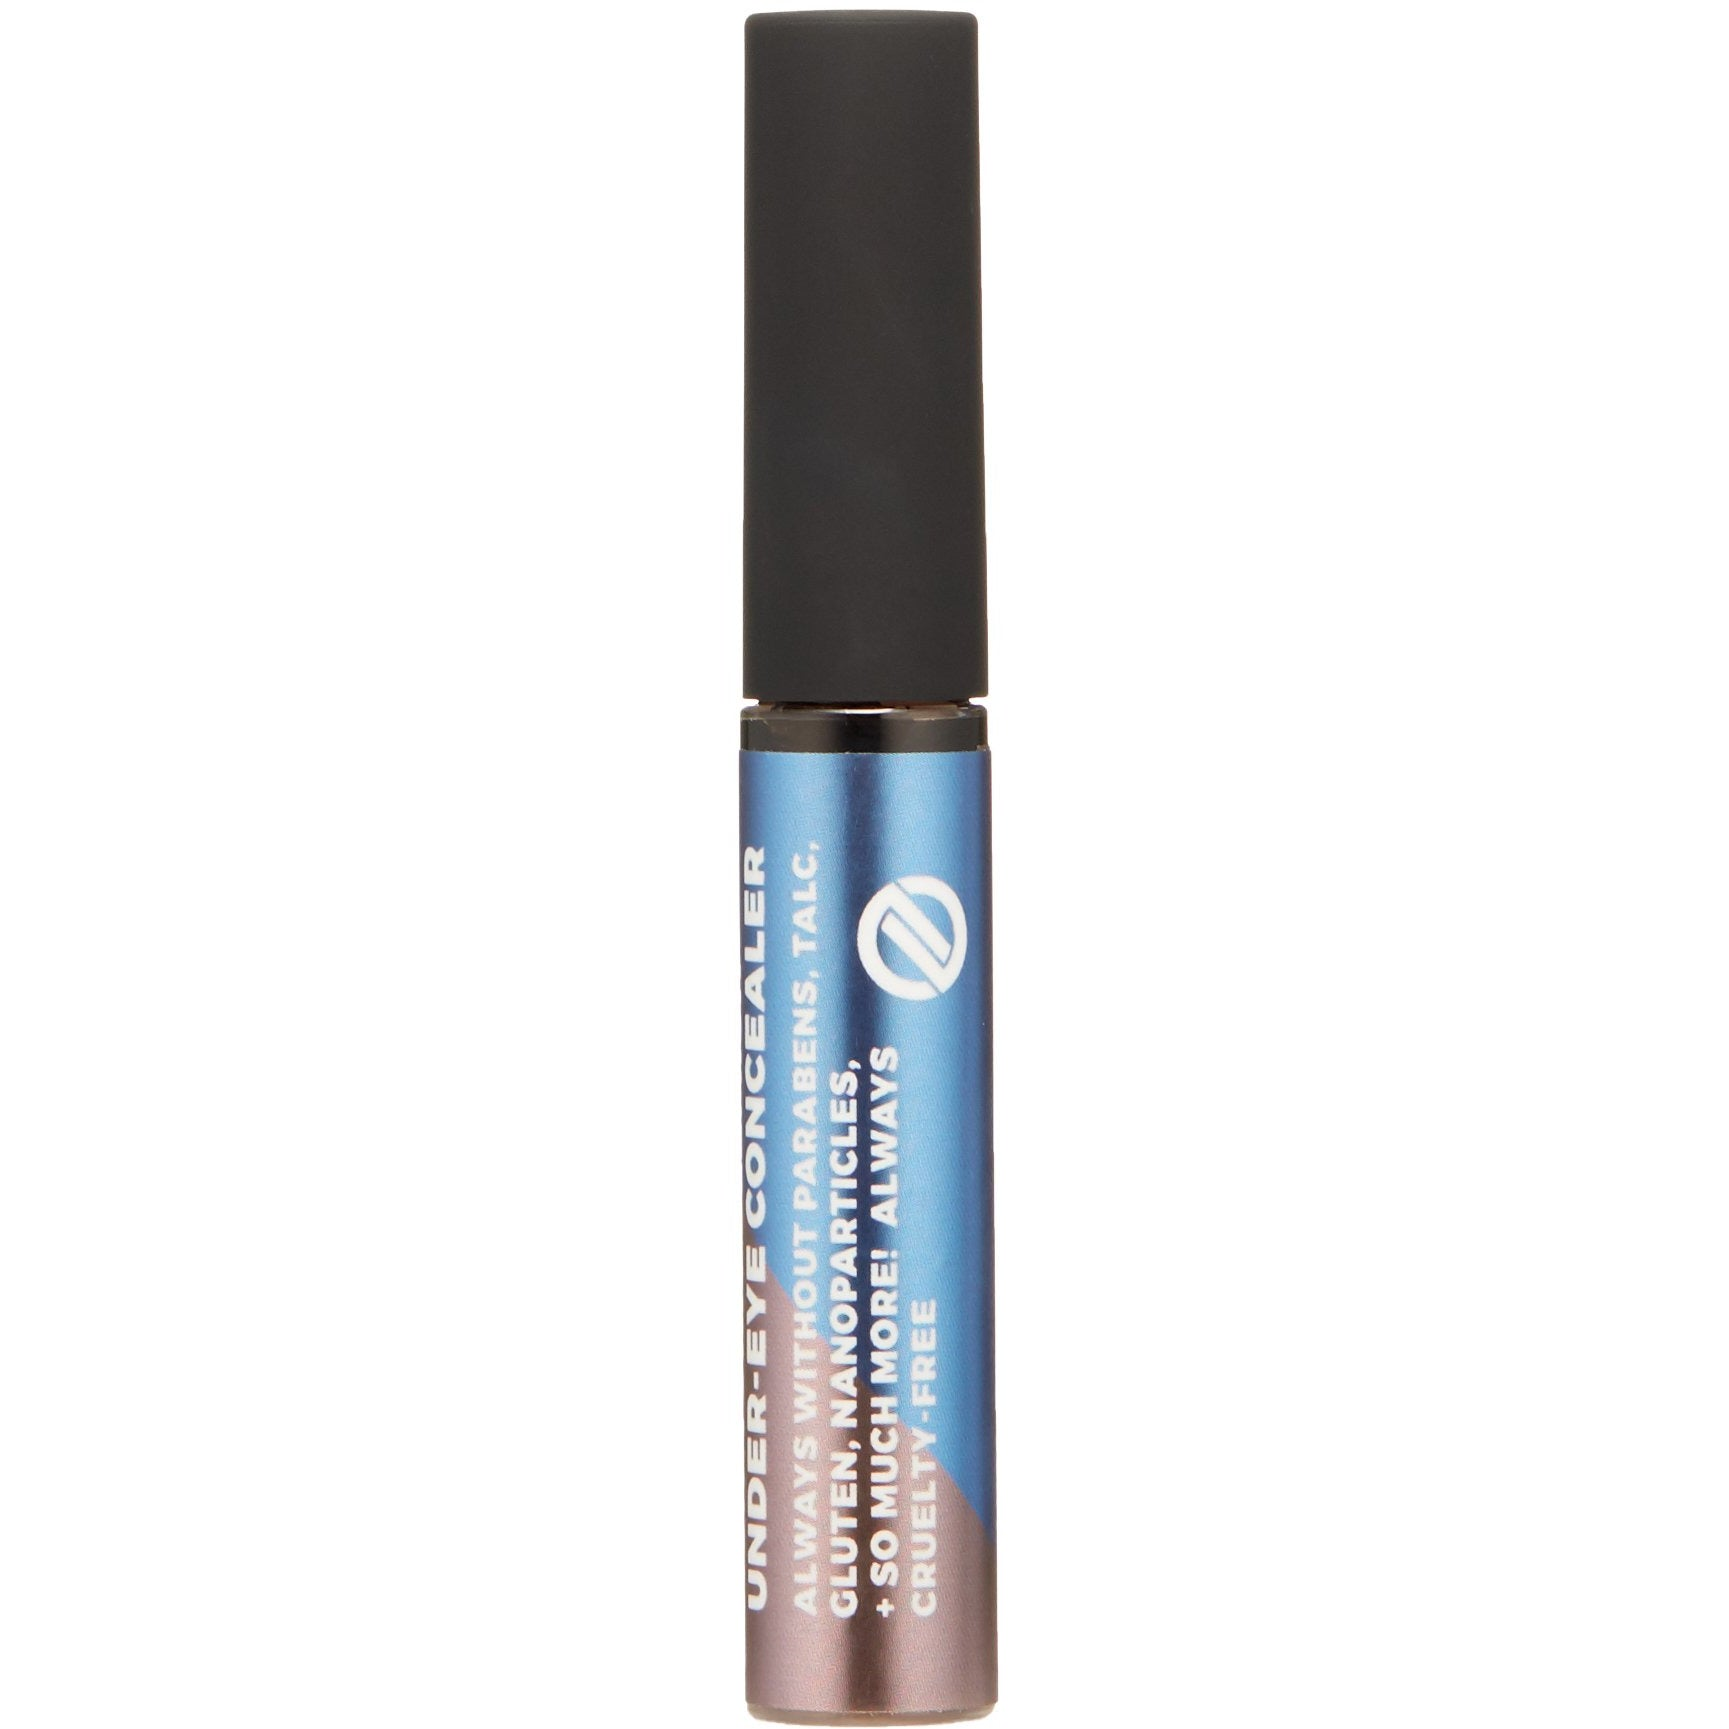 Under-eye concealer with no mica